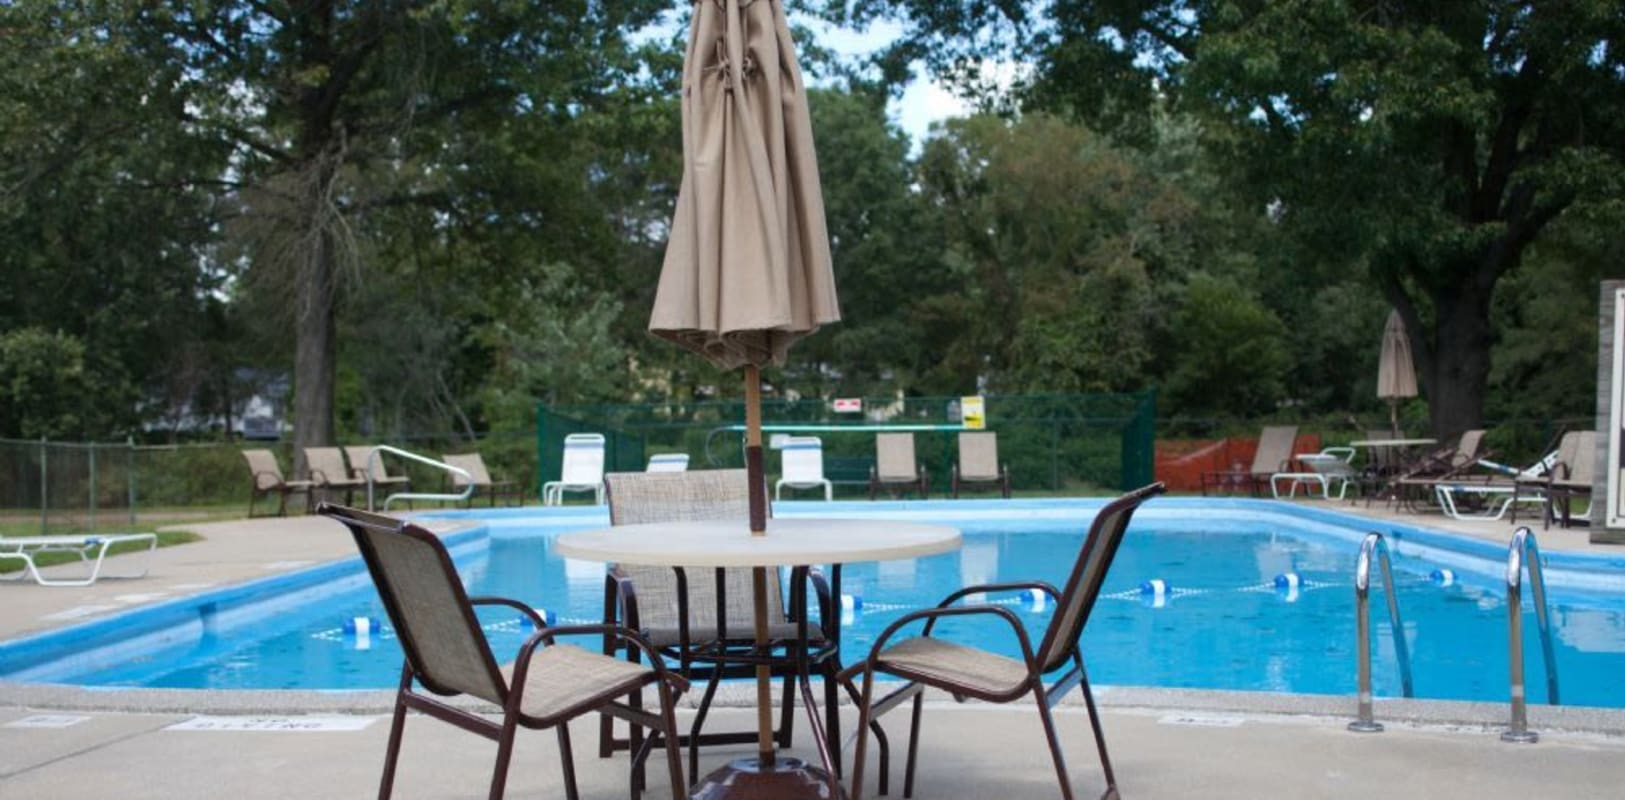 Sparkling swimming pool with patio seating at Brookwood Gardens in East Windsor, New Jersey